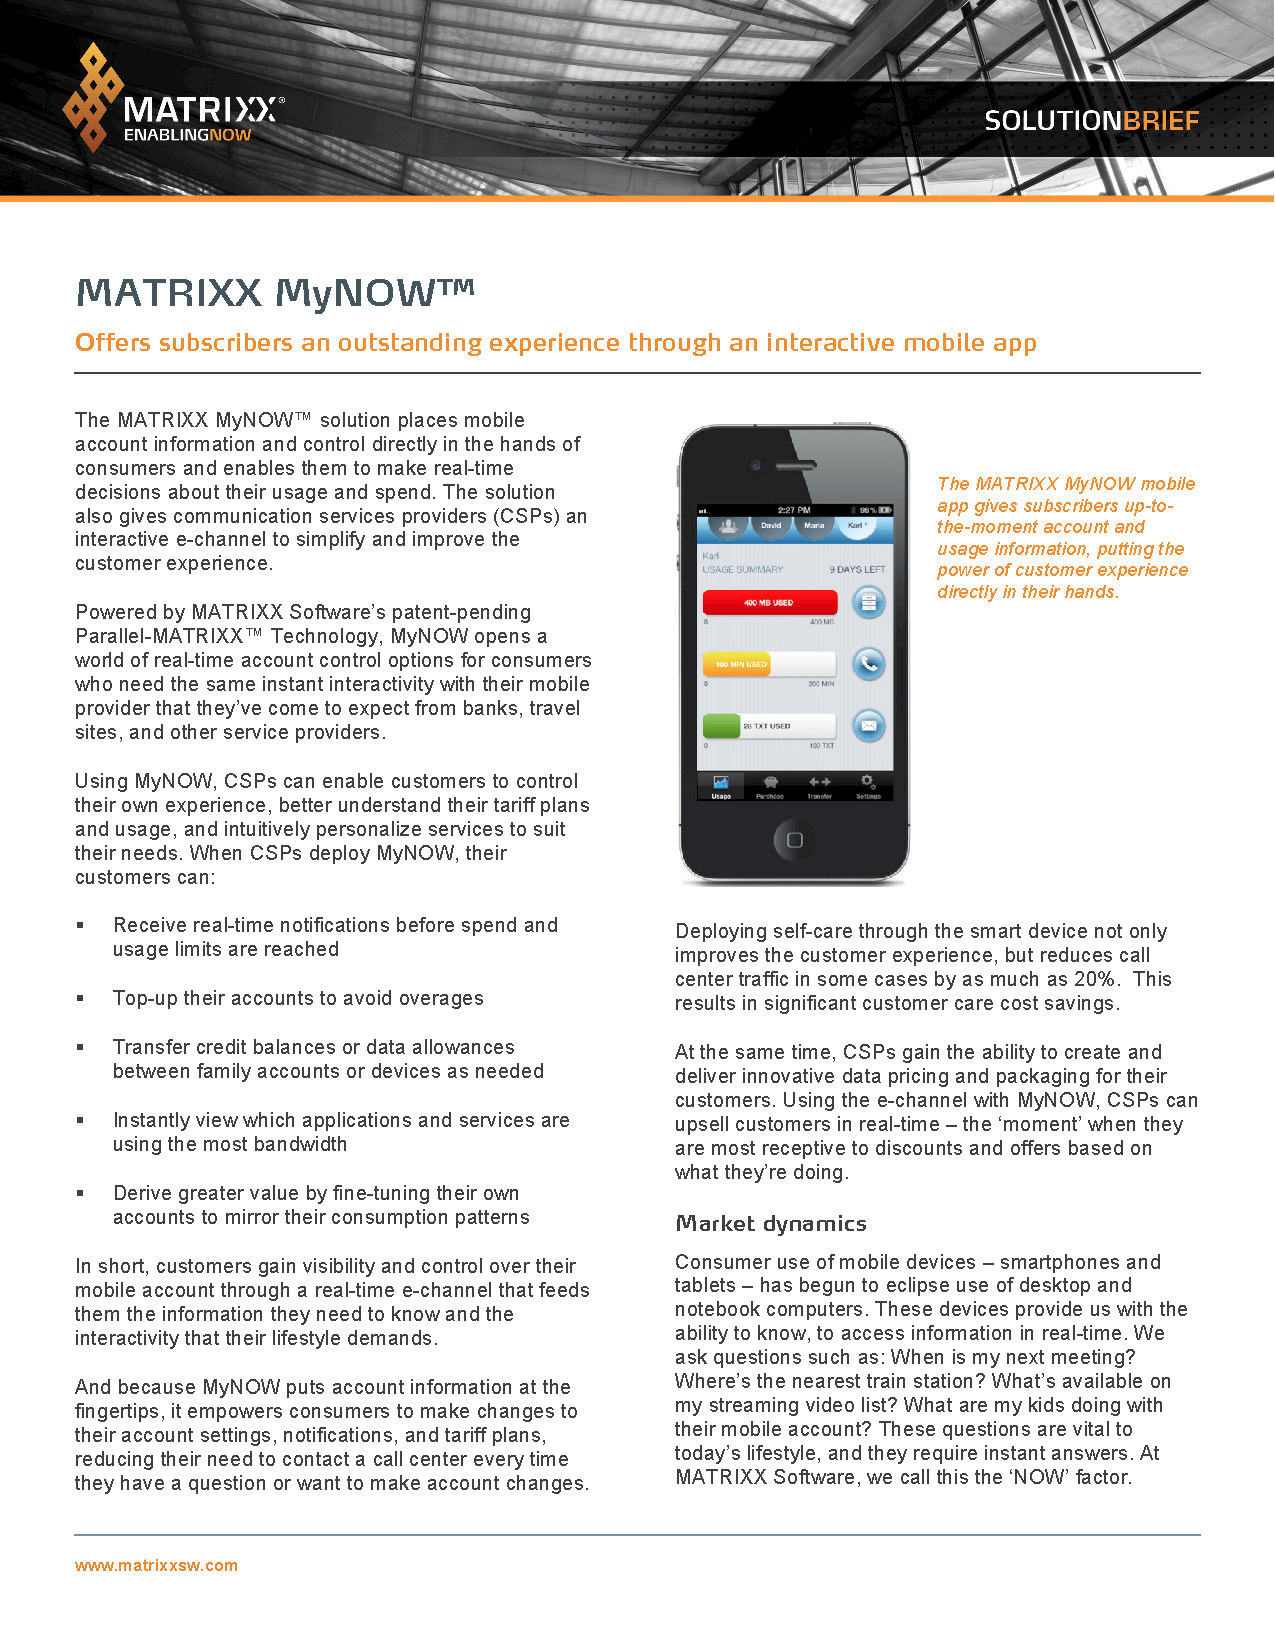 MATRIXX Software MyNOW Solution Brief